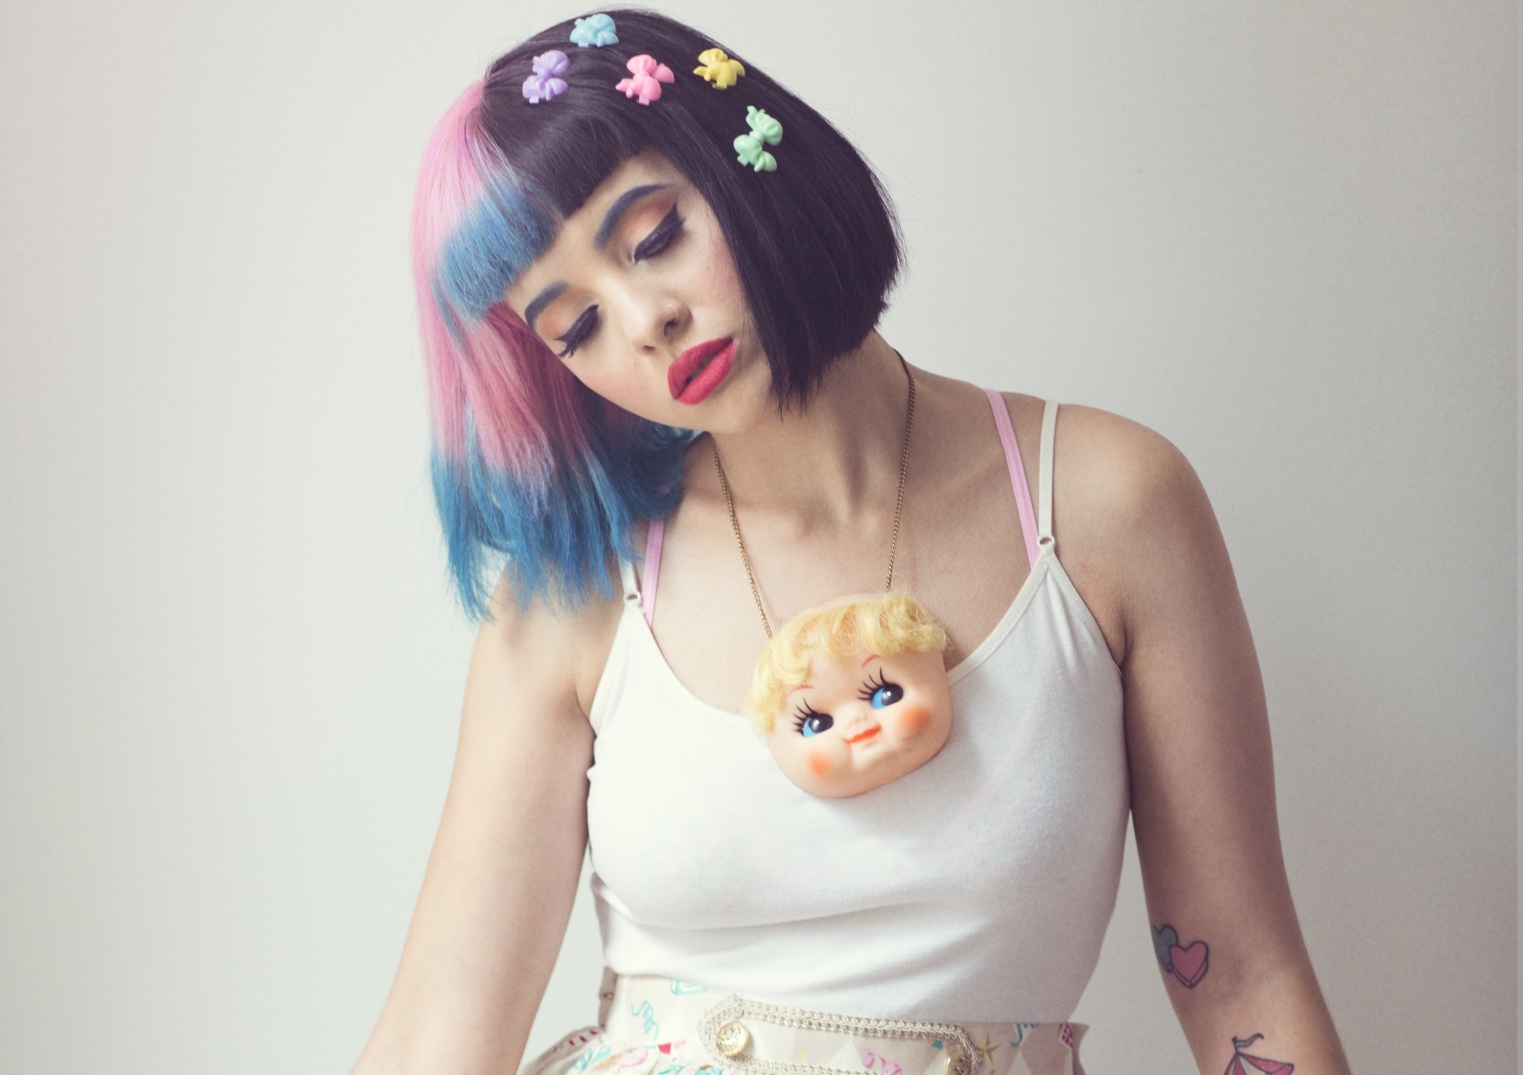 melanie martinez 06 – Number 1 Fm / Tv